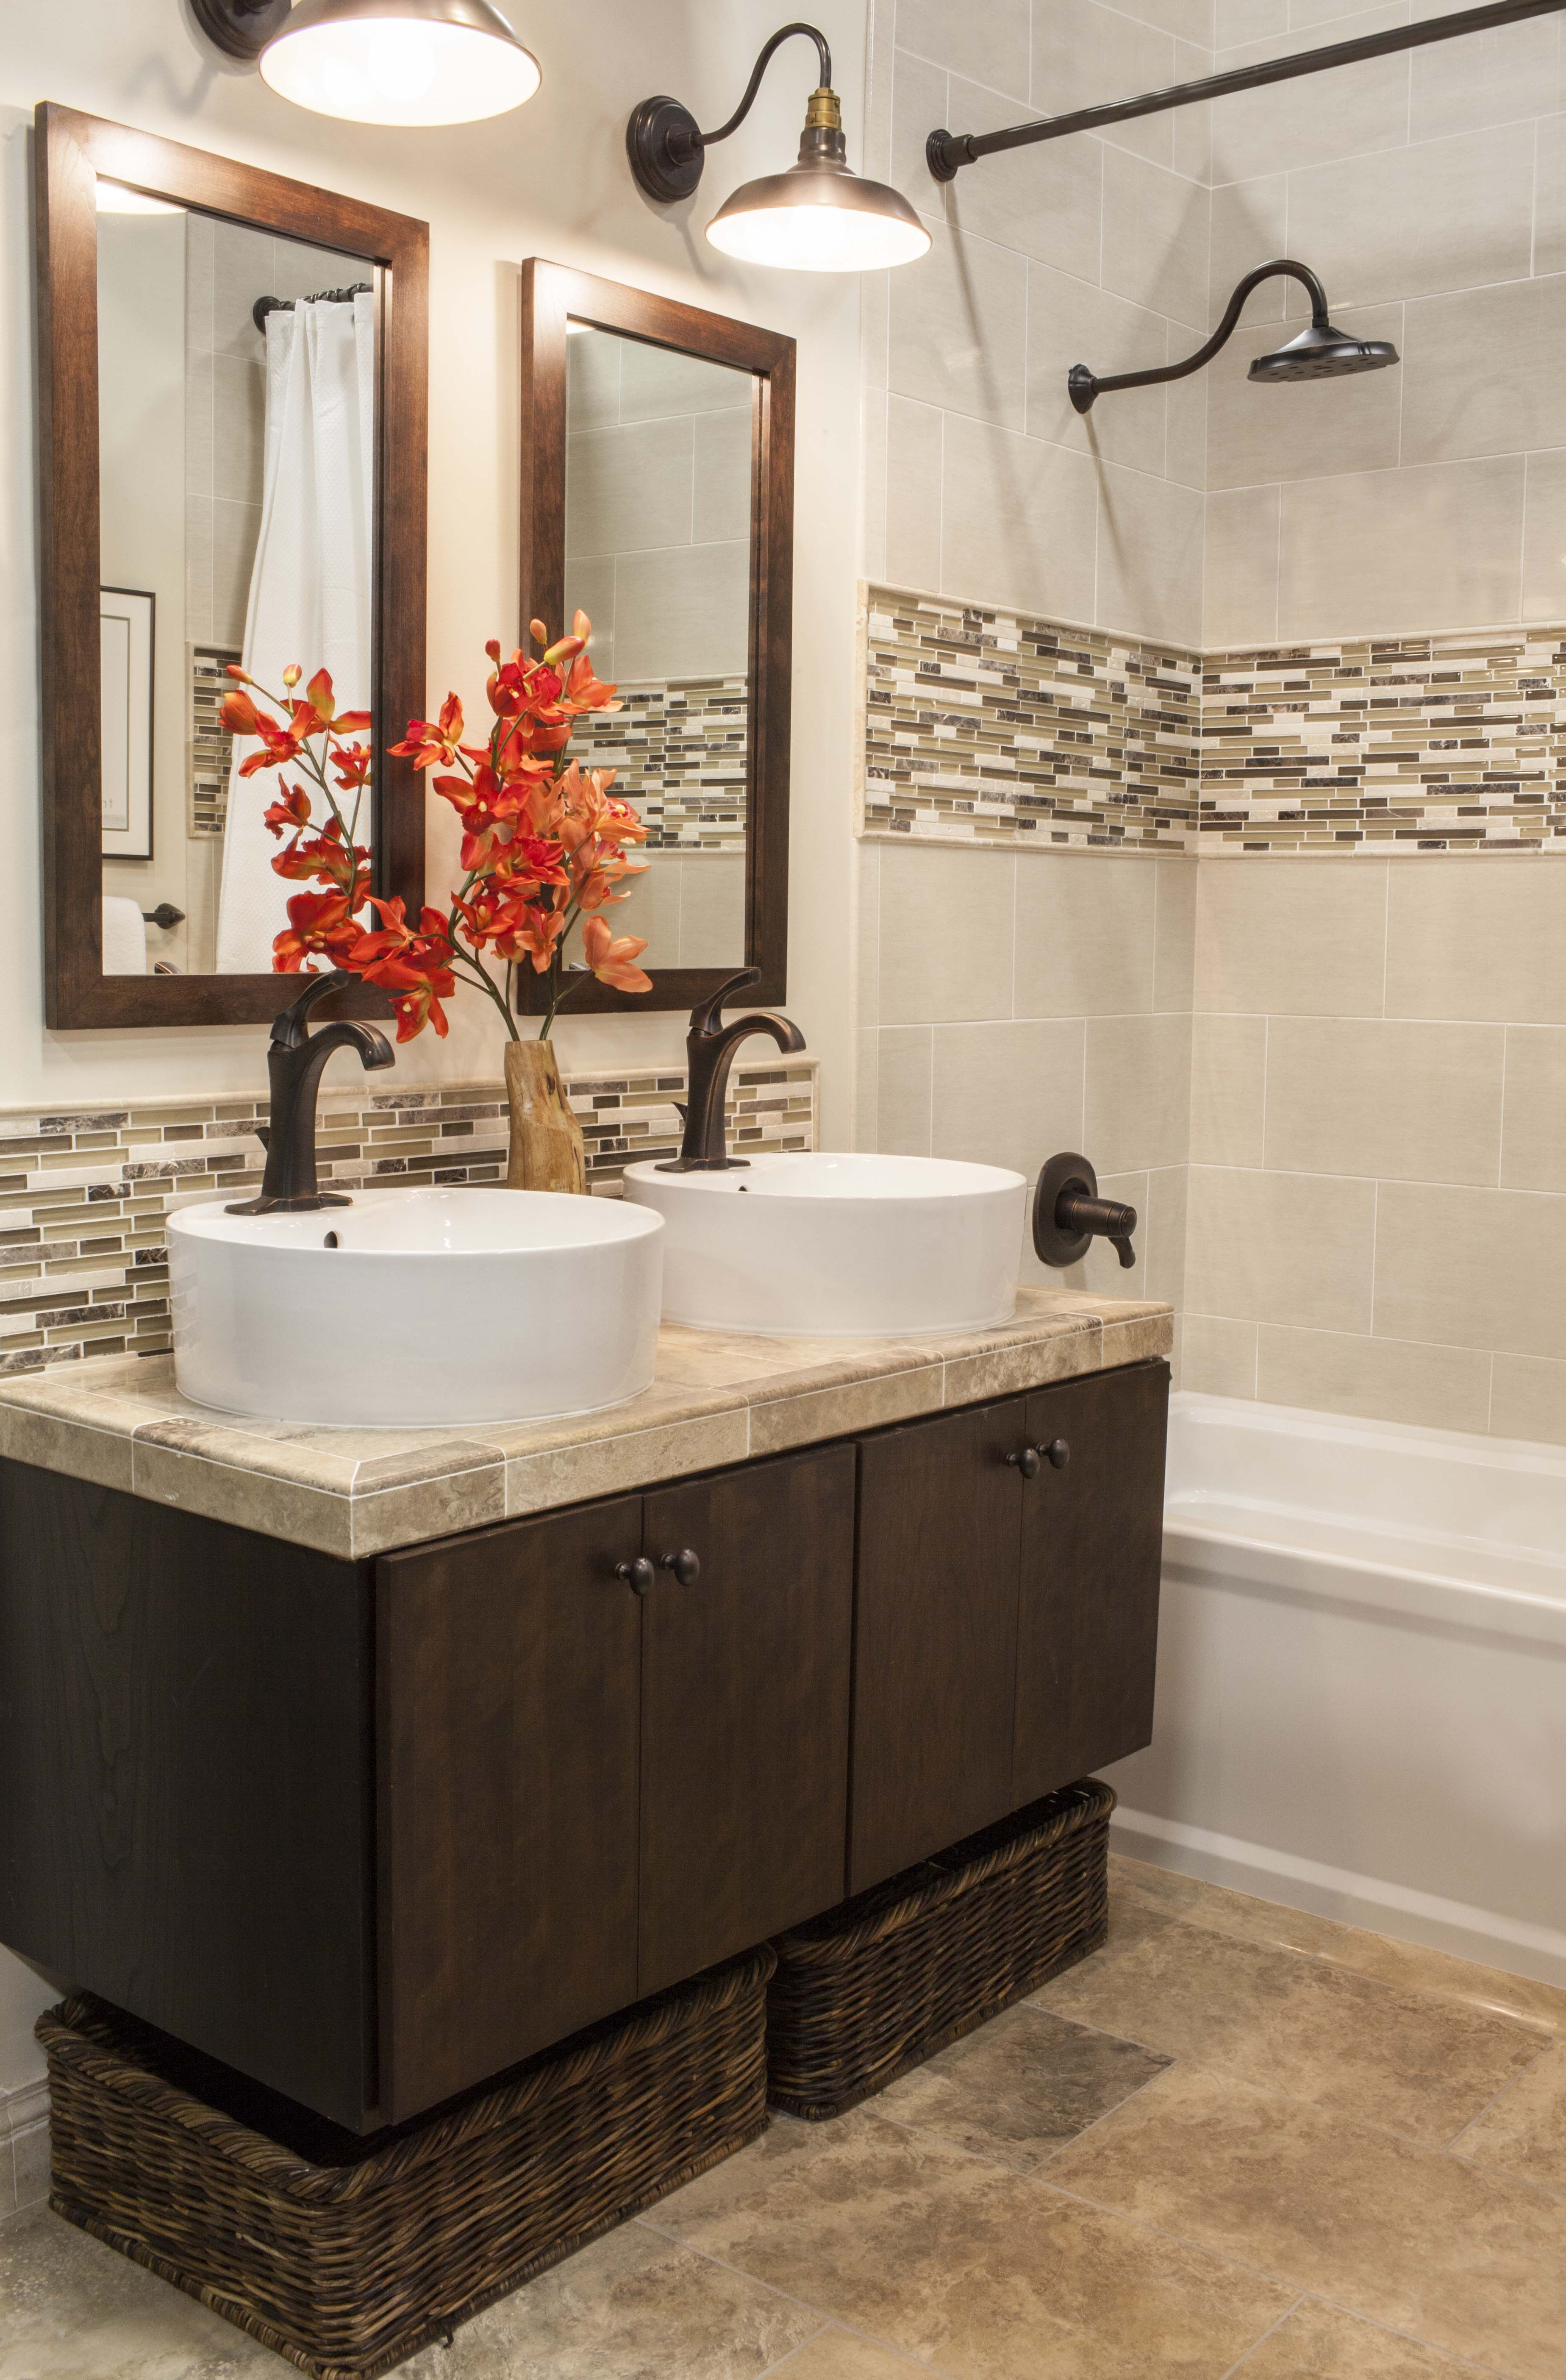 captivating stone tile bathroom accent wall ideas | 30 Inspiring Accent Wall Ideas To Change An Area | Home ...